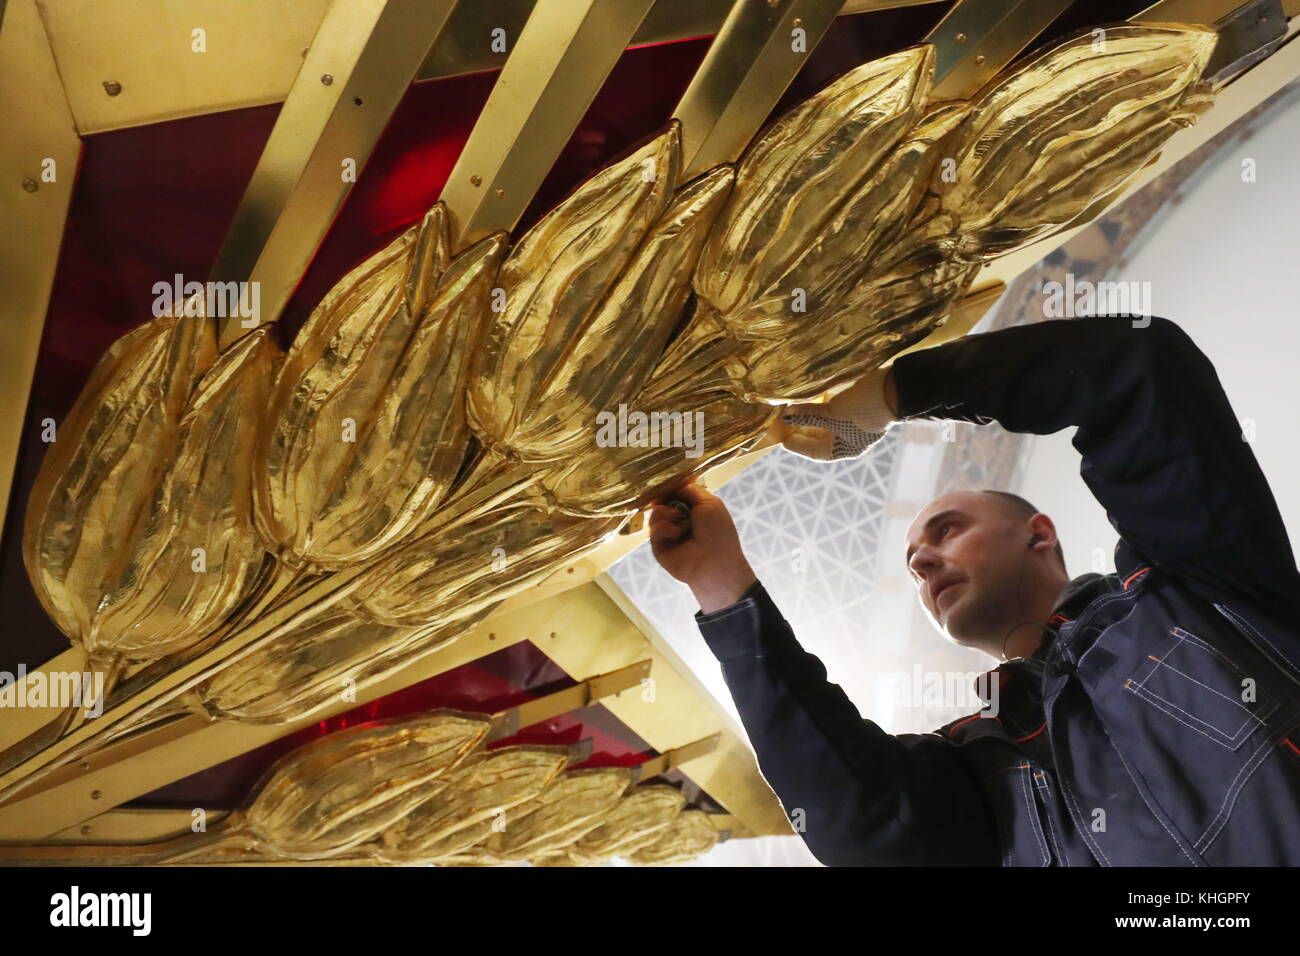 Moscow russia 17th nov 2017 a worker installing a star shaped a worker installing a star shaped chandelier at the cosmos pavilion of the vdnkh exhibition centre the chandelier is a replica of the star that had been aloadofball Image collections